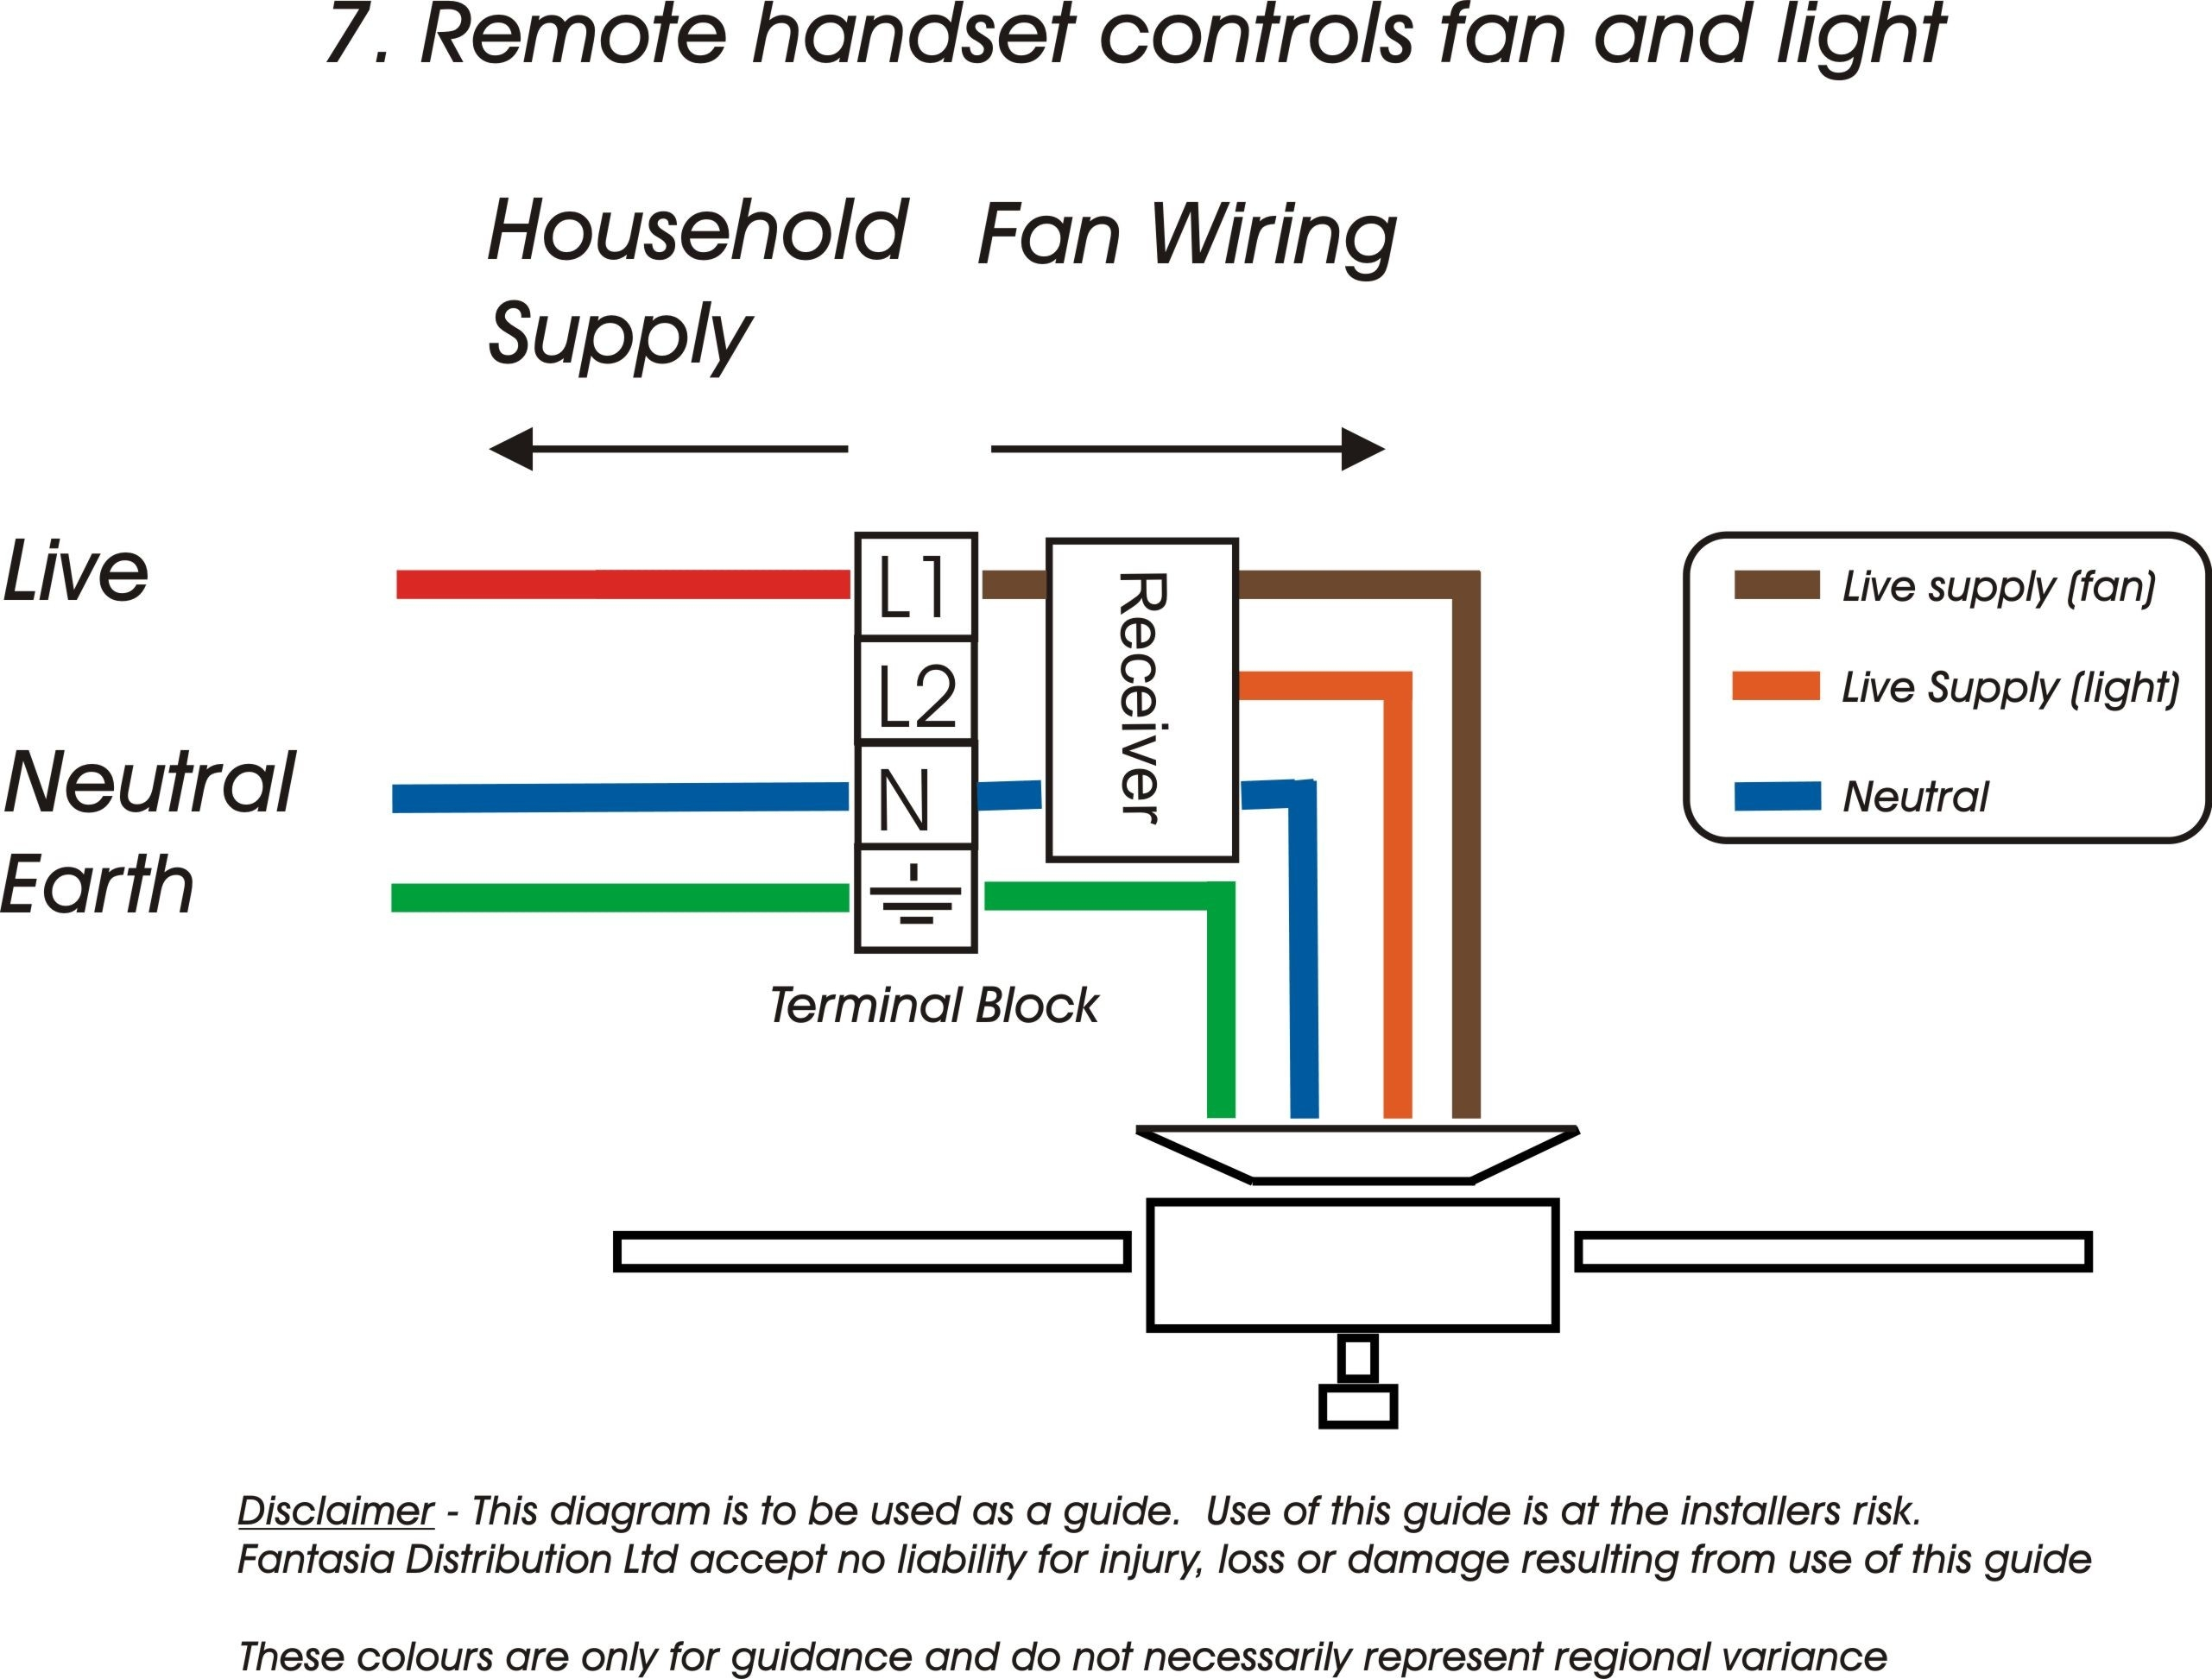 Wiring Diagram For Ceiling Fan Switch 3 Sd | Wiring Diagram on furnace parts diagram, furnace fan parts, furnace relay wiring, furnace fan center wiring, furnace schematic diagram, 6 pole furnace relay diagram, furnace fan motor, furnace fan capacitor, furnace fan timer, furnace fan exhaust, furnace motor winding diagram, furnace electrical diagram, furnace fan controls,